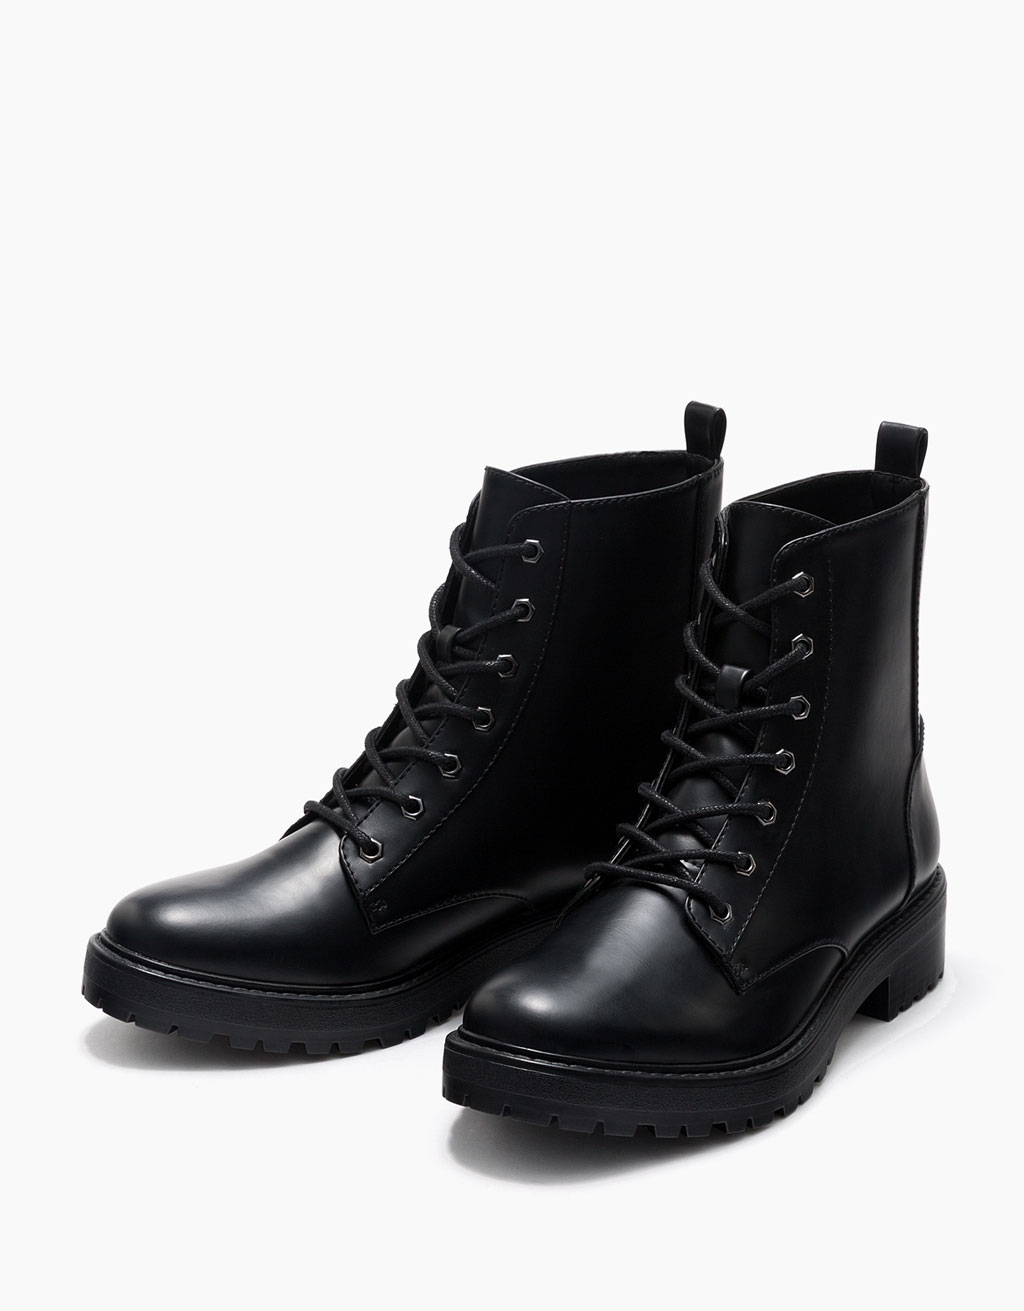 Basic flat, lace-up ankle boots